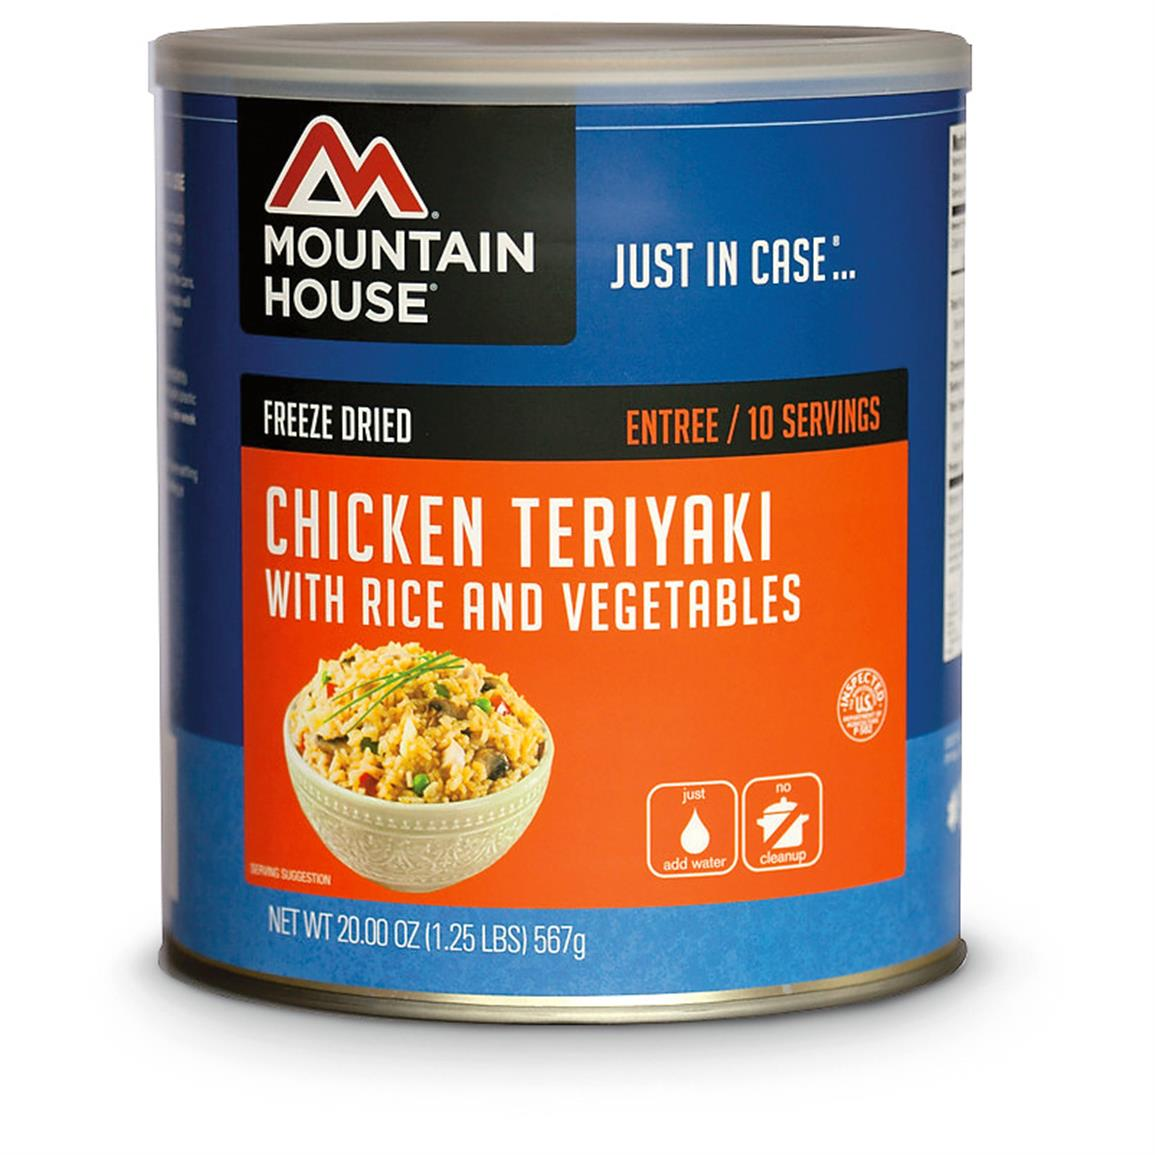 Mountain House Emergency Food Freeze-Dried Chicken Teriyaki